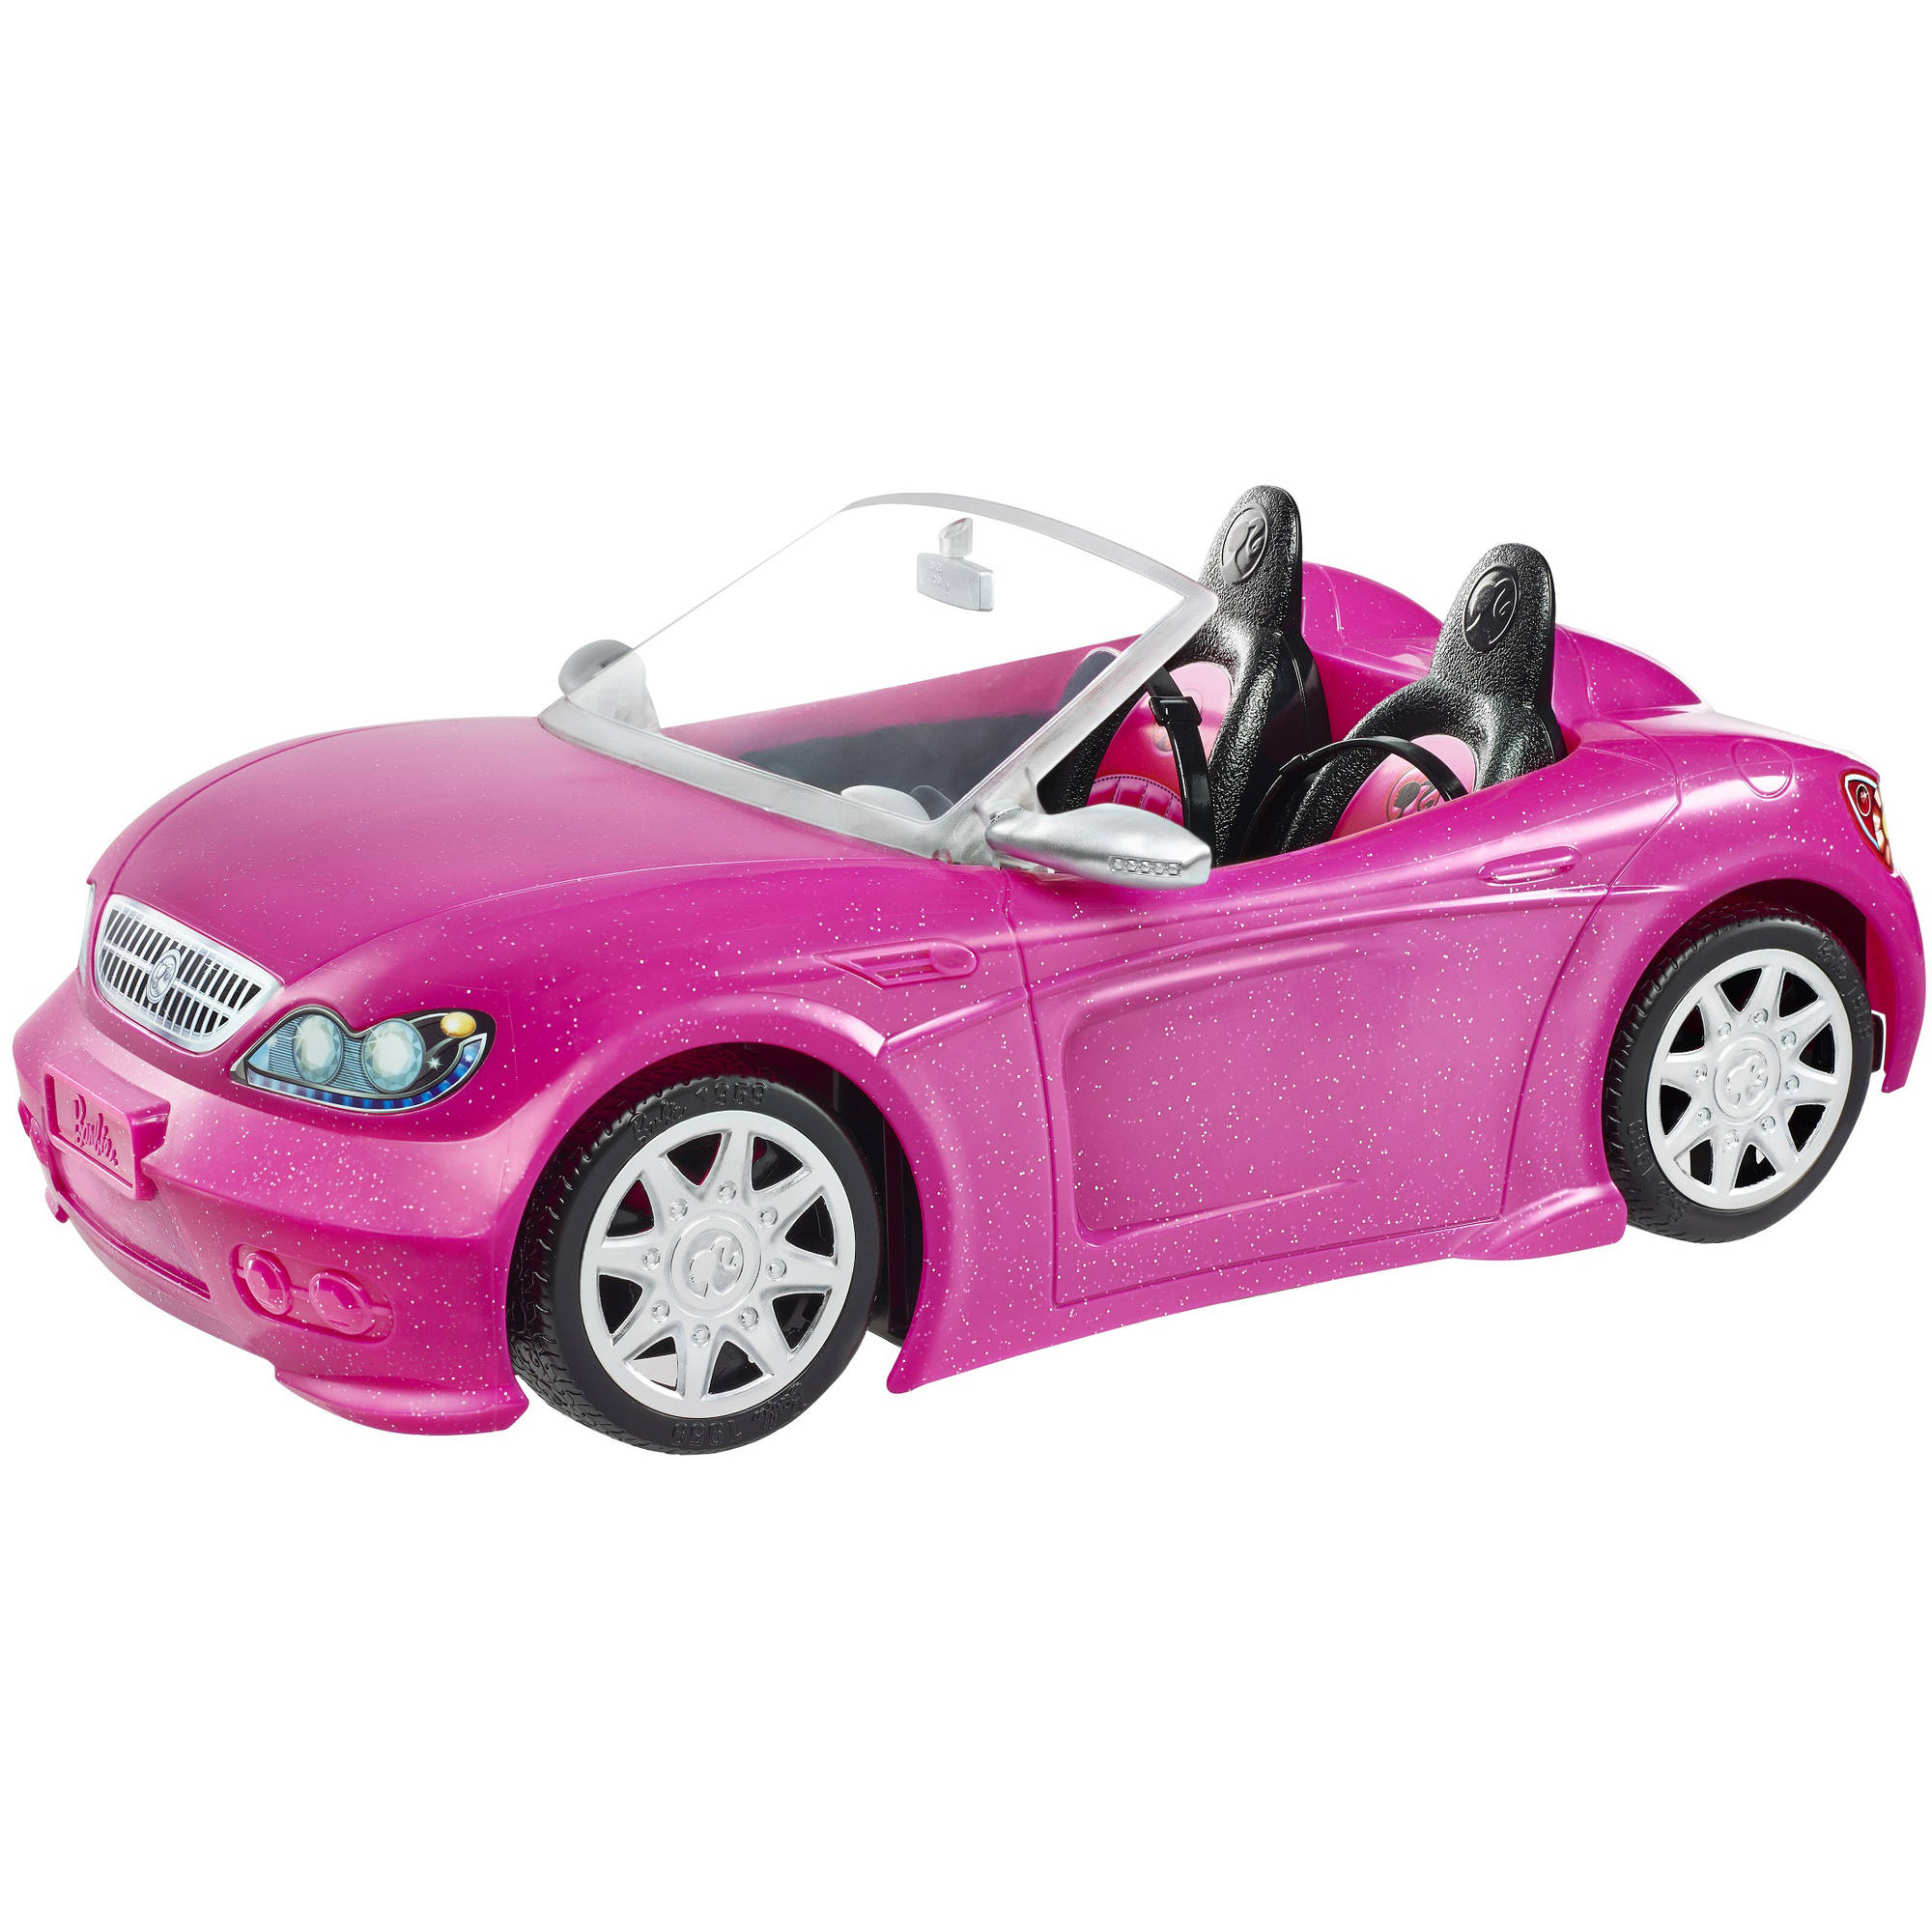 Barbie Glam Convertible, Pink